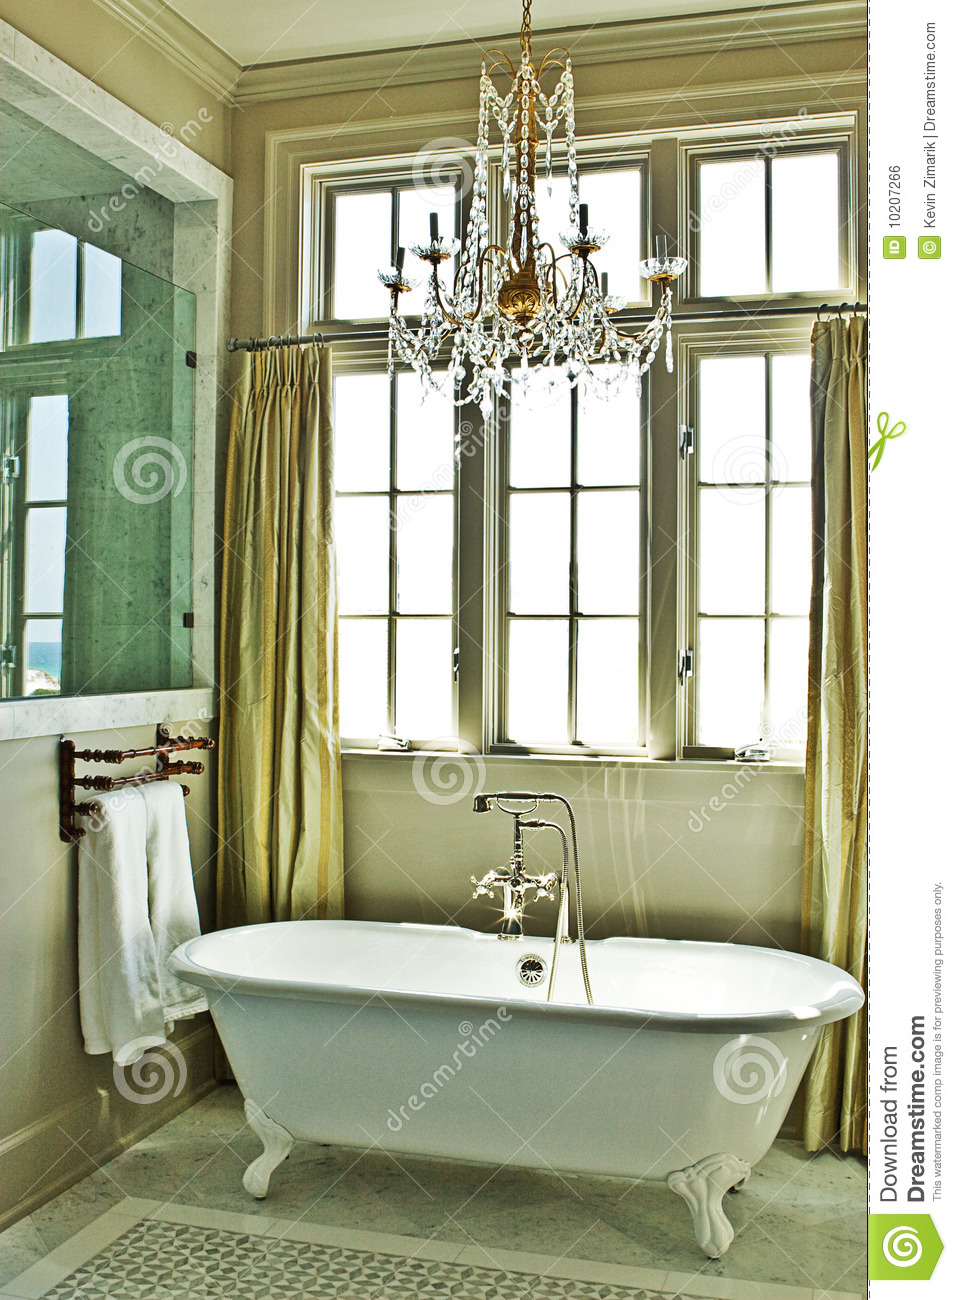 Cuartos De Baño Con Tina:Elegant Bathroom with Clawfoot Tub